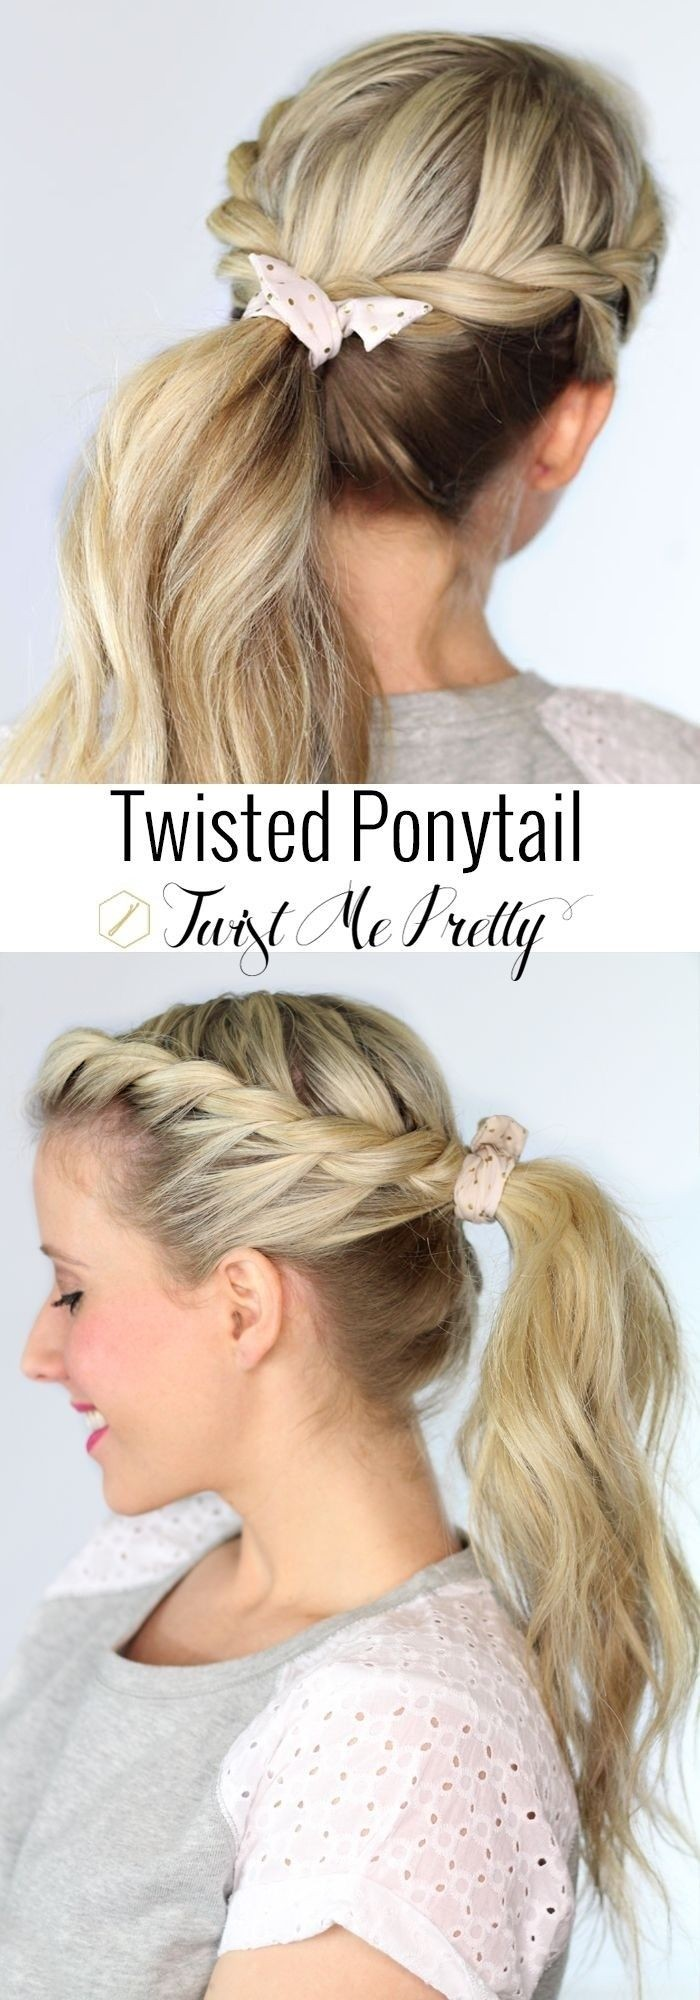 20 Ponytail Hairstyles Discover Latest Ponytail Ideas Now  PoPular Haircuts